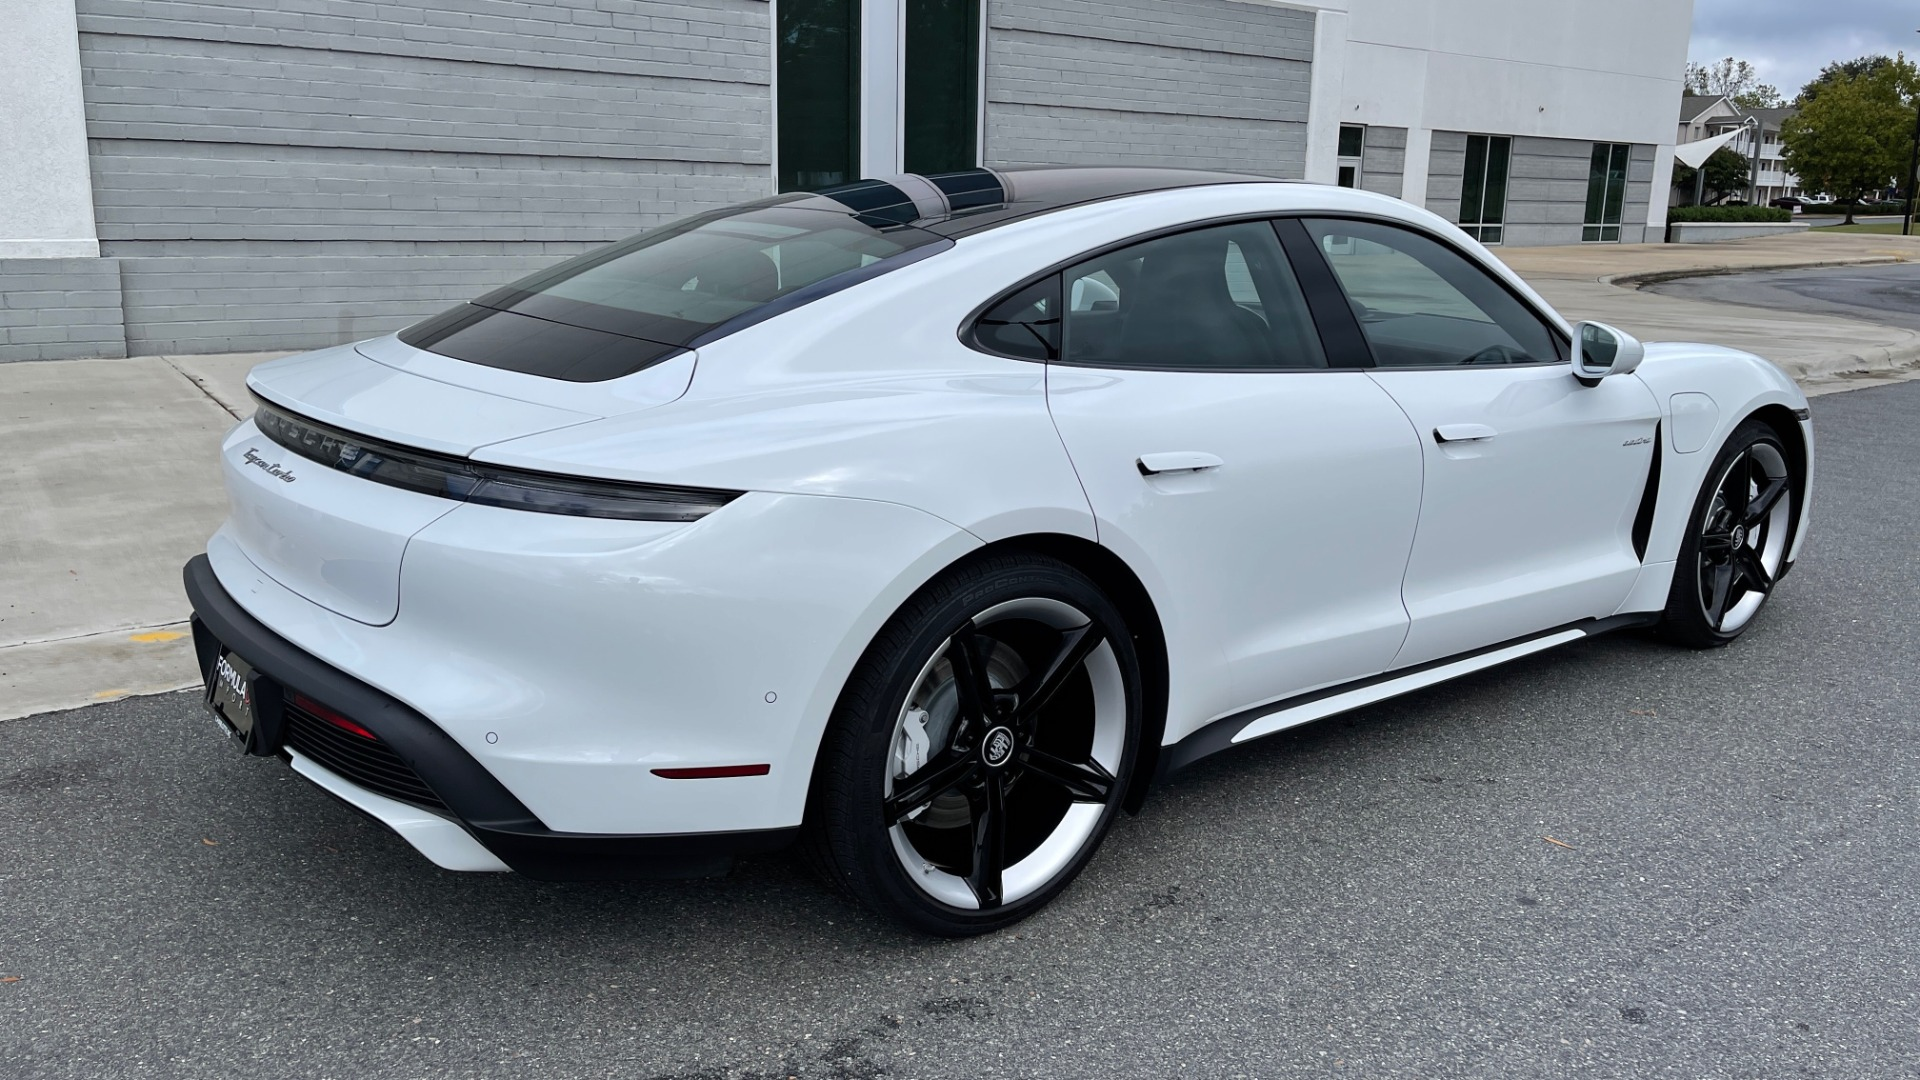 Used 2020 Porsche TAYCAN TURBO SEDAN / AWD / NAV / BOSE / PANO-ROOF / LCA / SURROUND VIEW for sale $162,995 at Formula Imports in Charlotte NC 28227 8